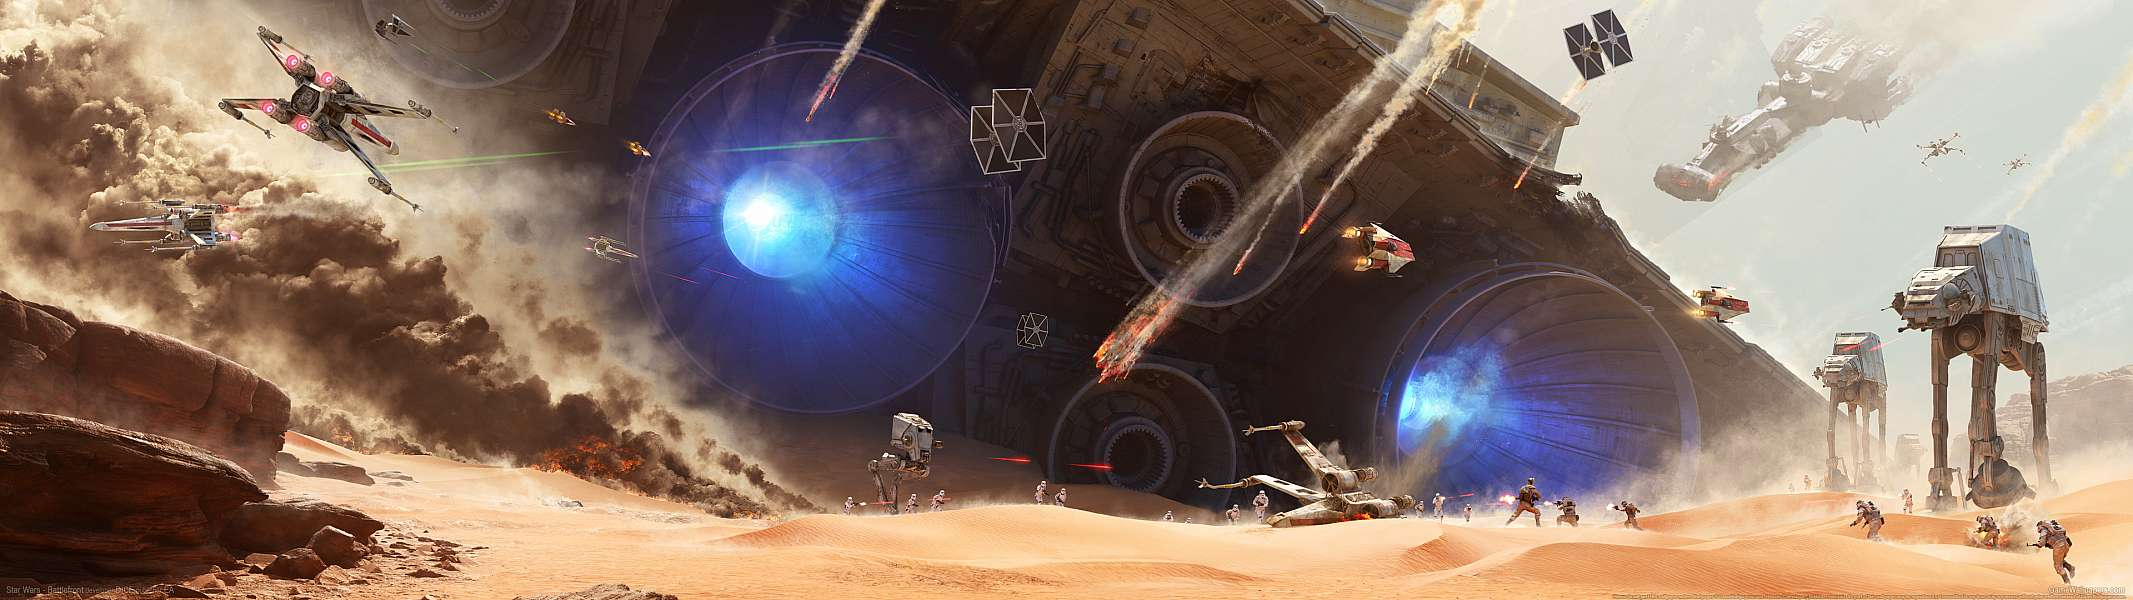 Star Wars - Battlefront dual screen wallpaper or background